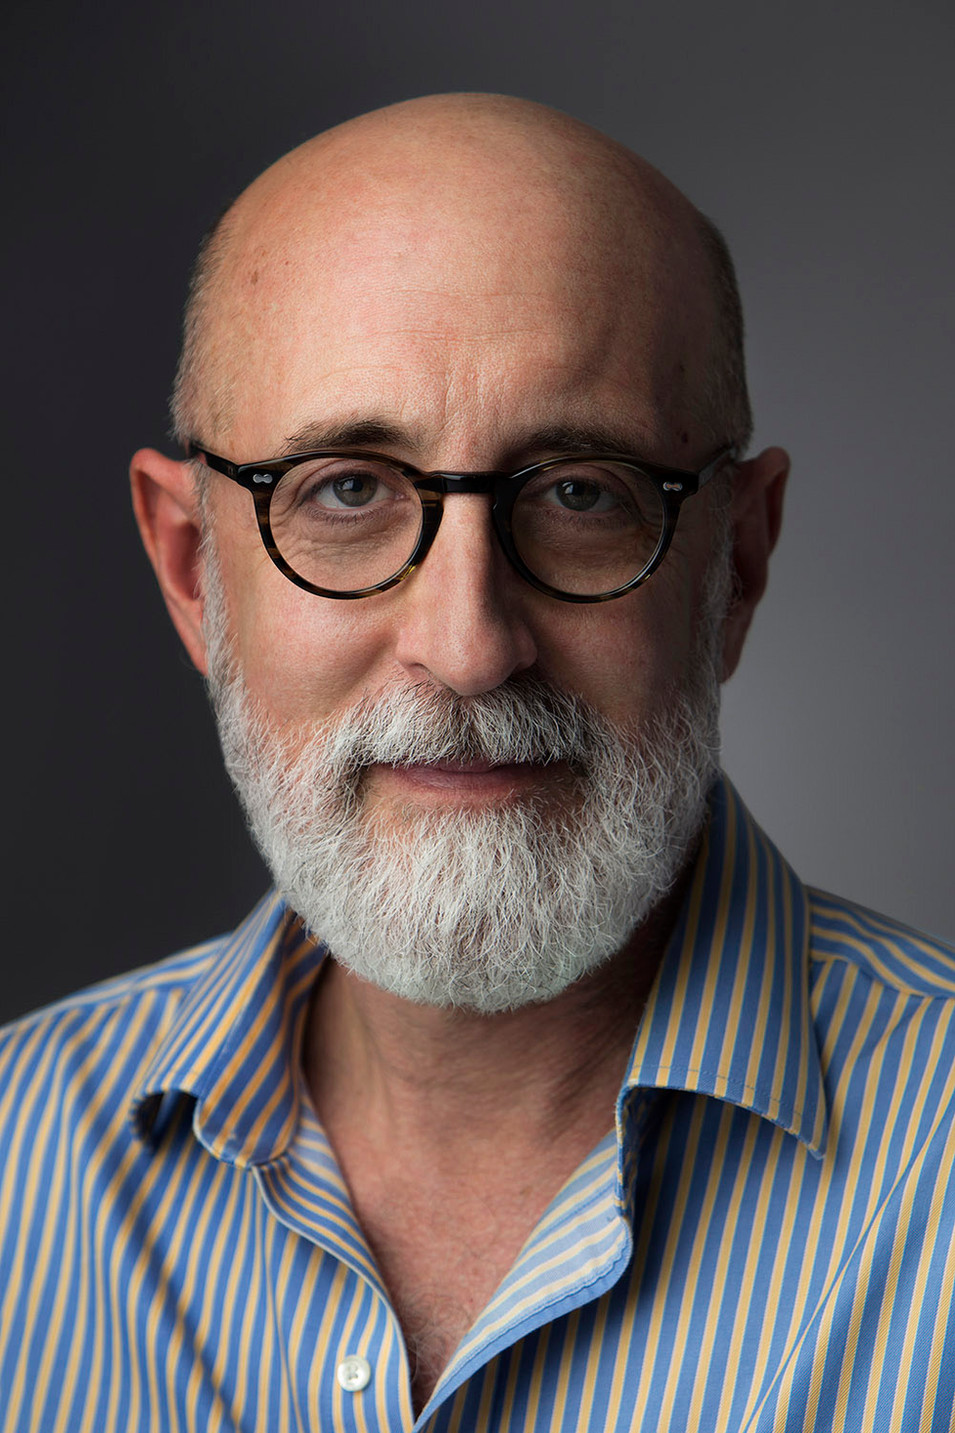 Studio Headshot of a middle age man